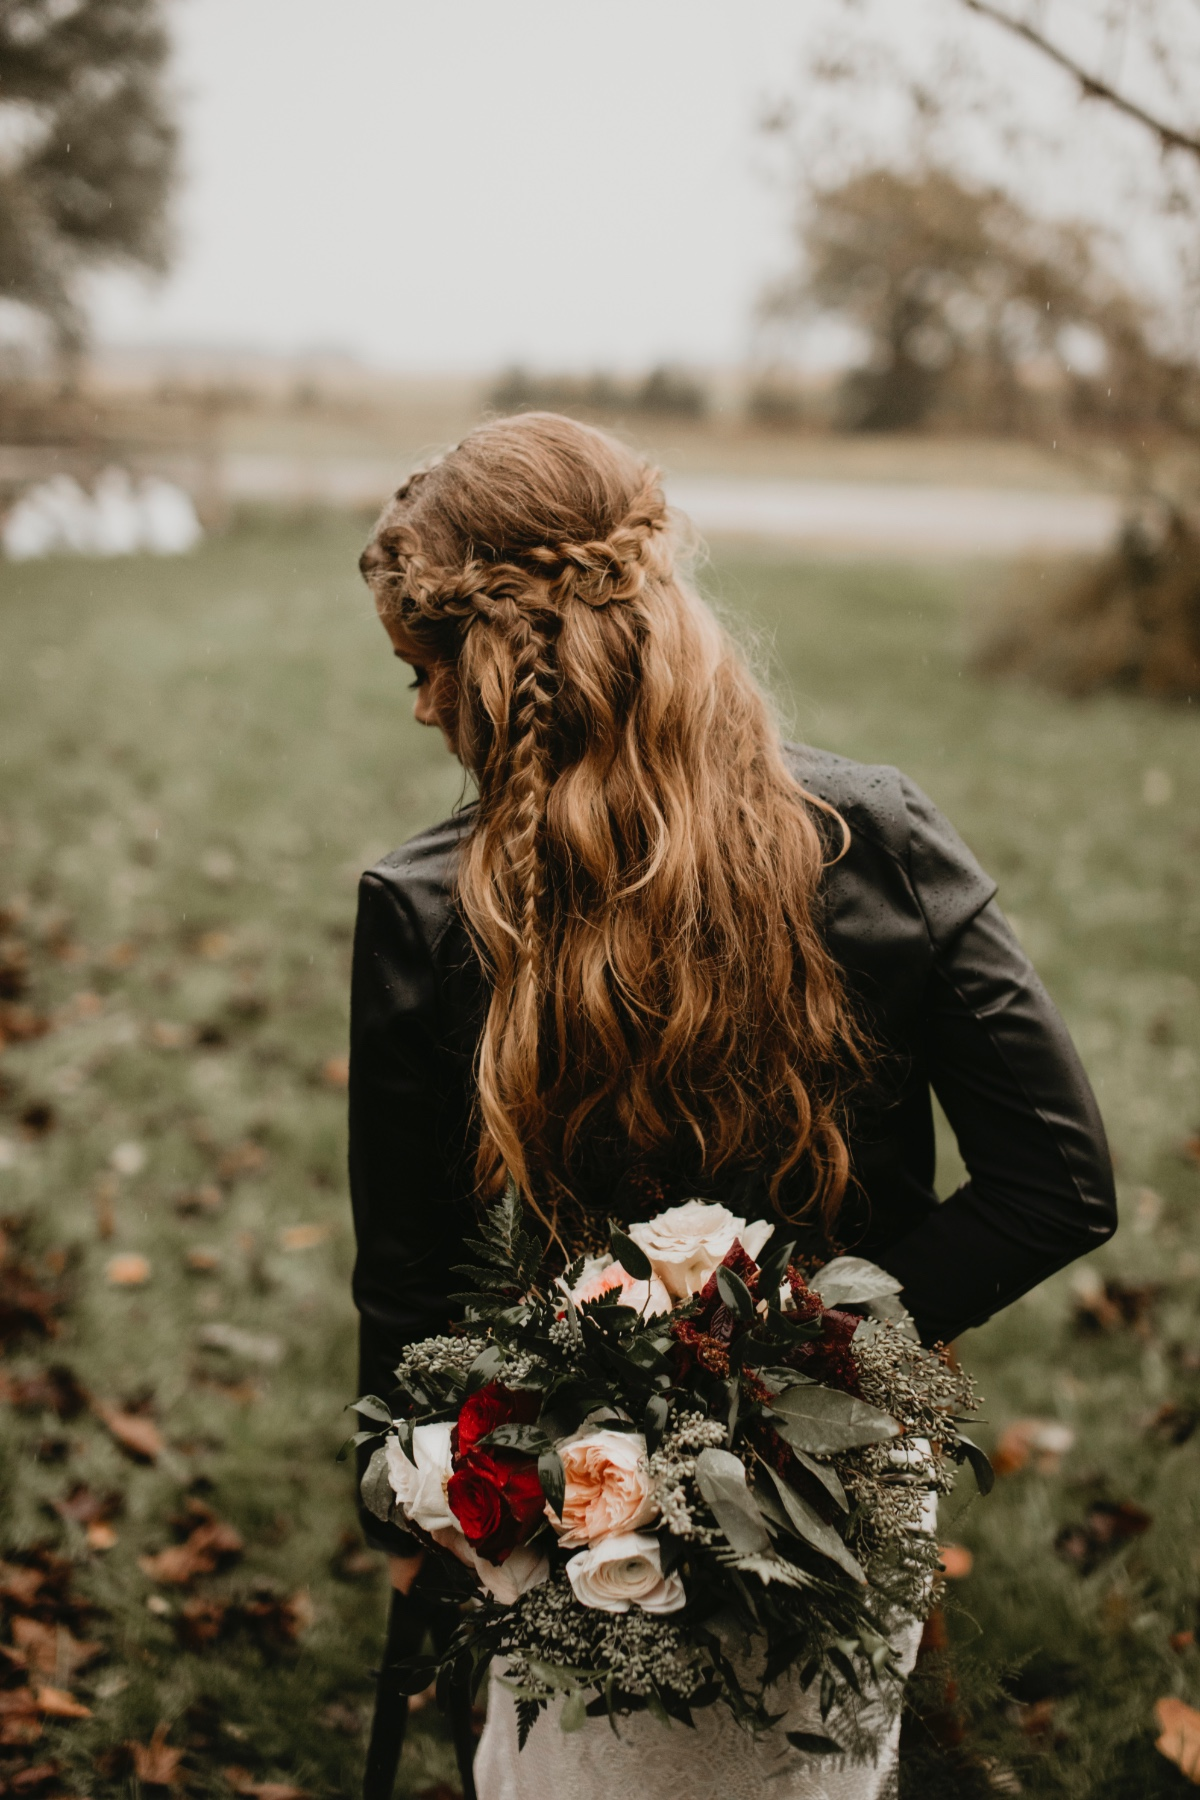 Boho bride wedding hair and bouquet